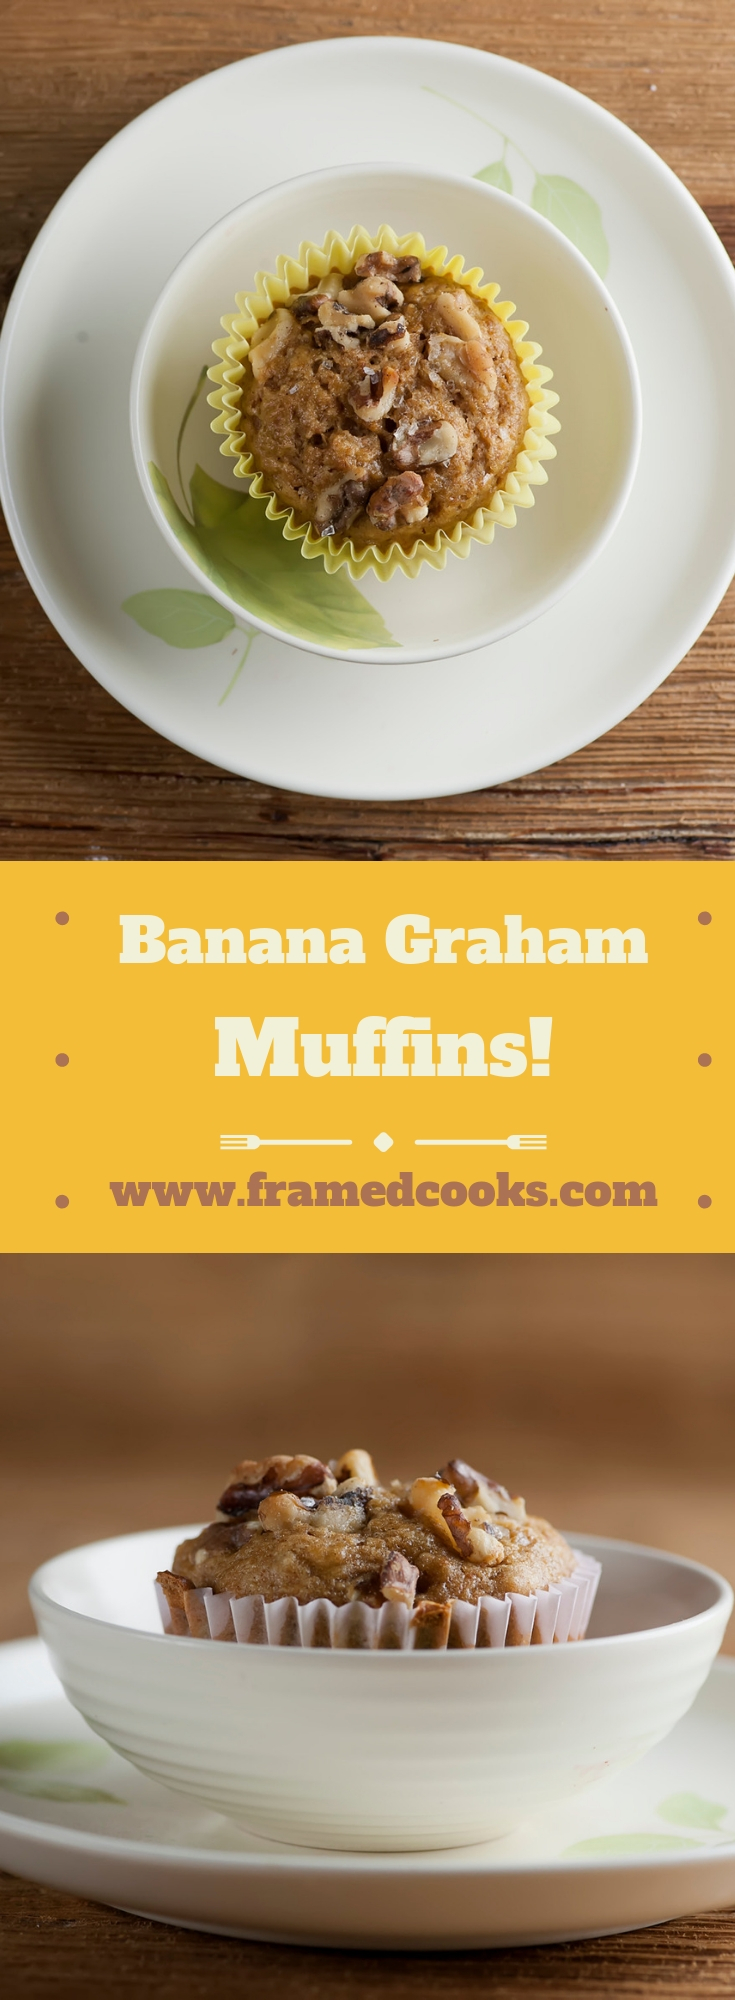 This easy recipe for banana graham muffins takes two of your favorite flavors and turns them into a warm and wonderful muffin!  Perfect for breakfast or snack time.